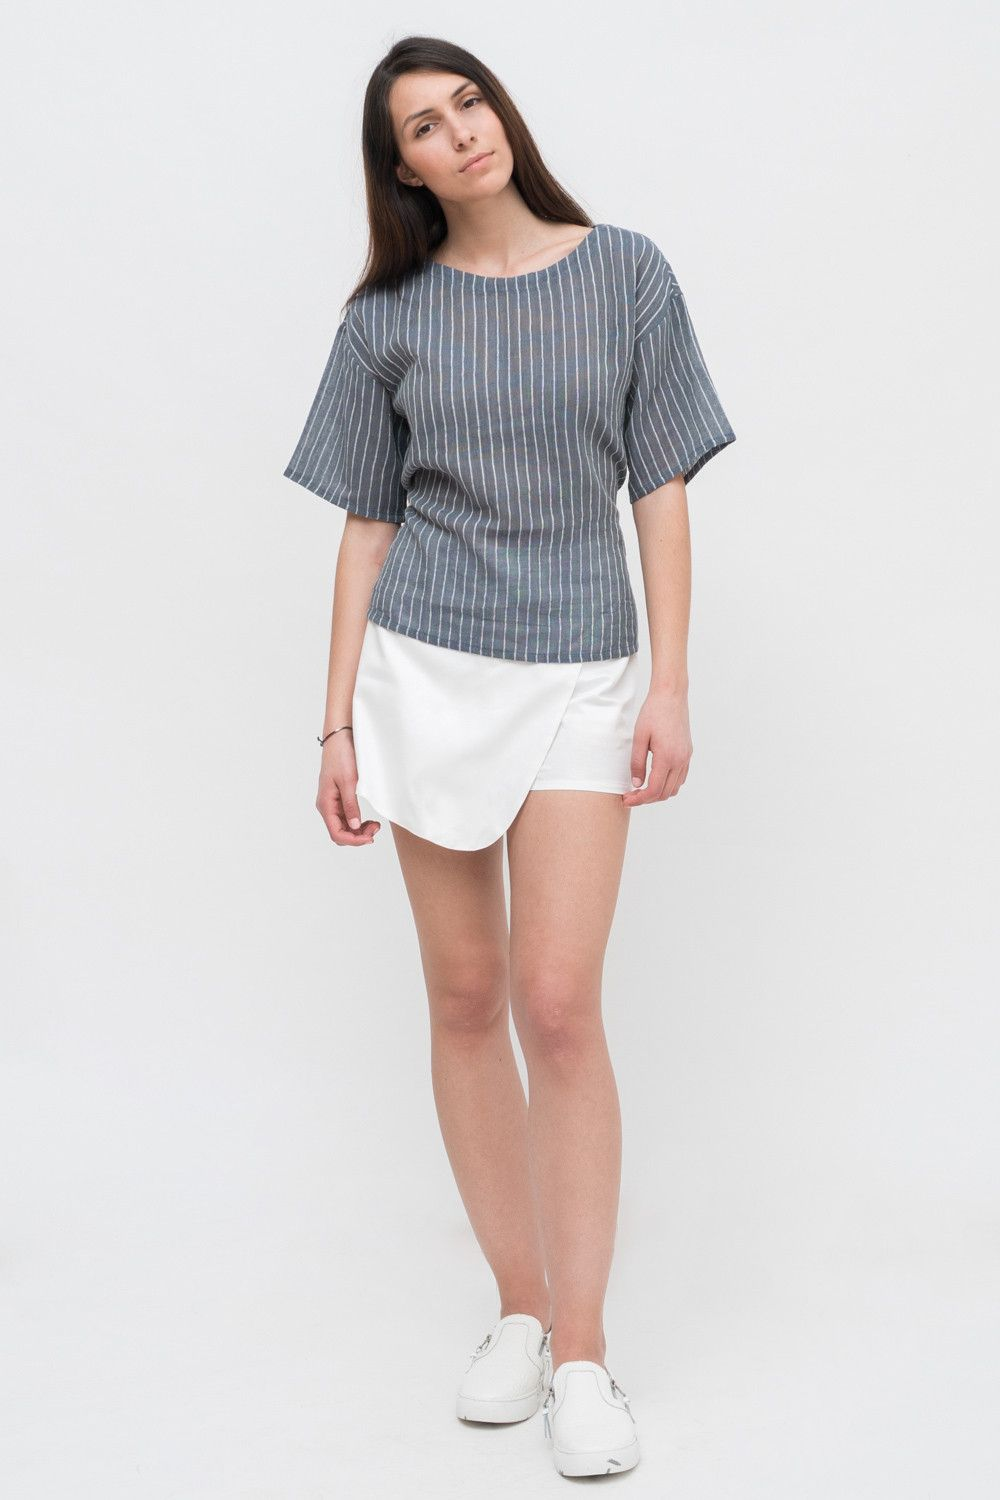 KNOTTED TOP from Ozon Boutique